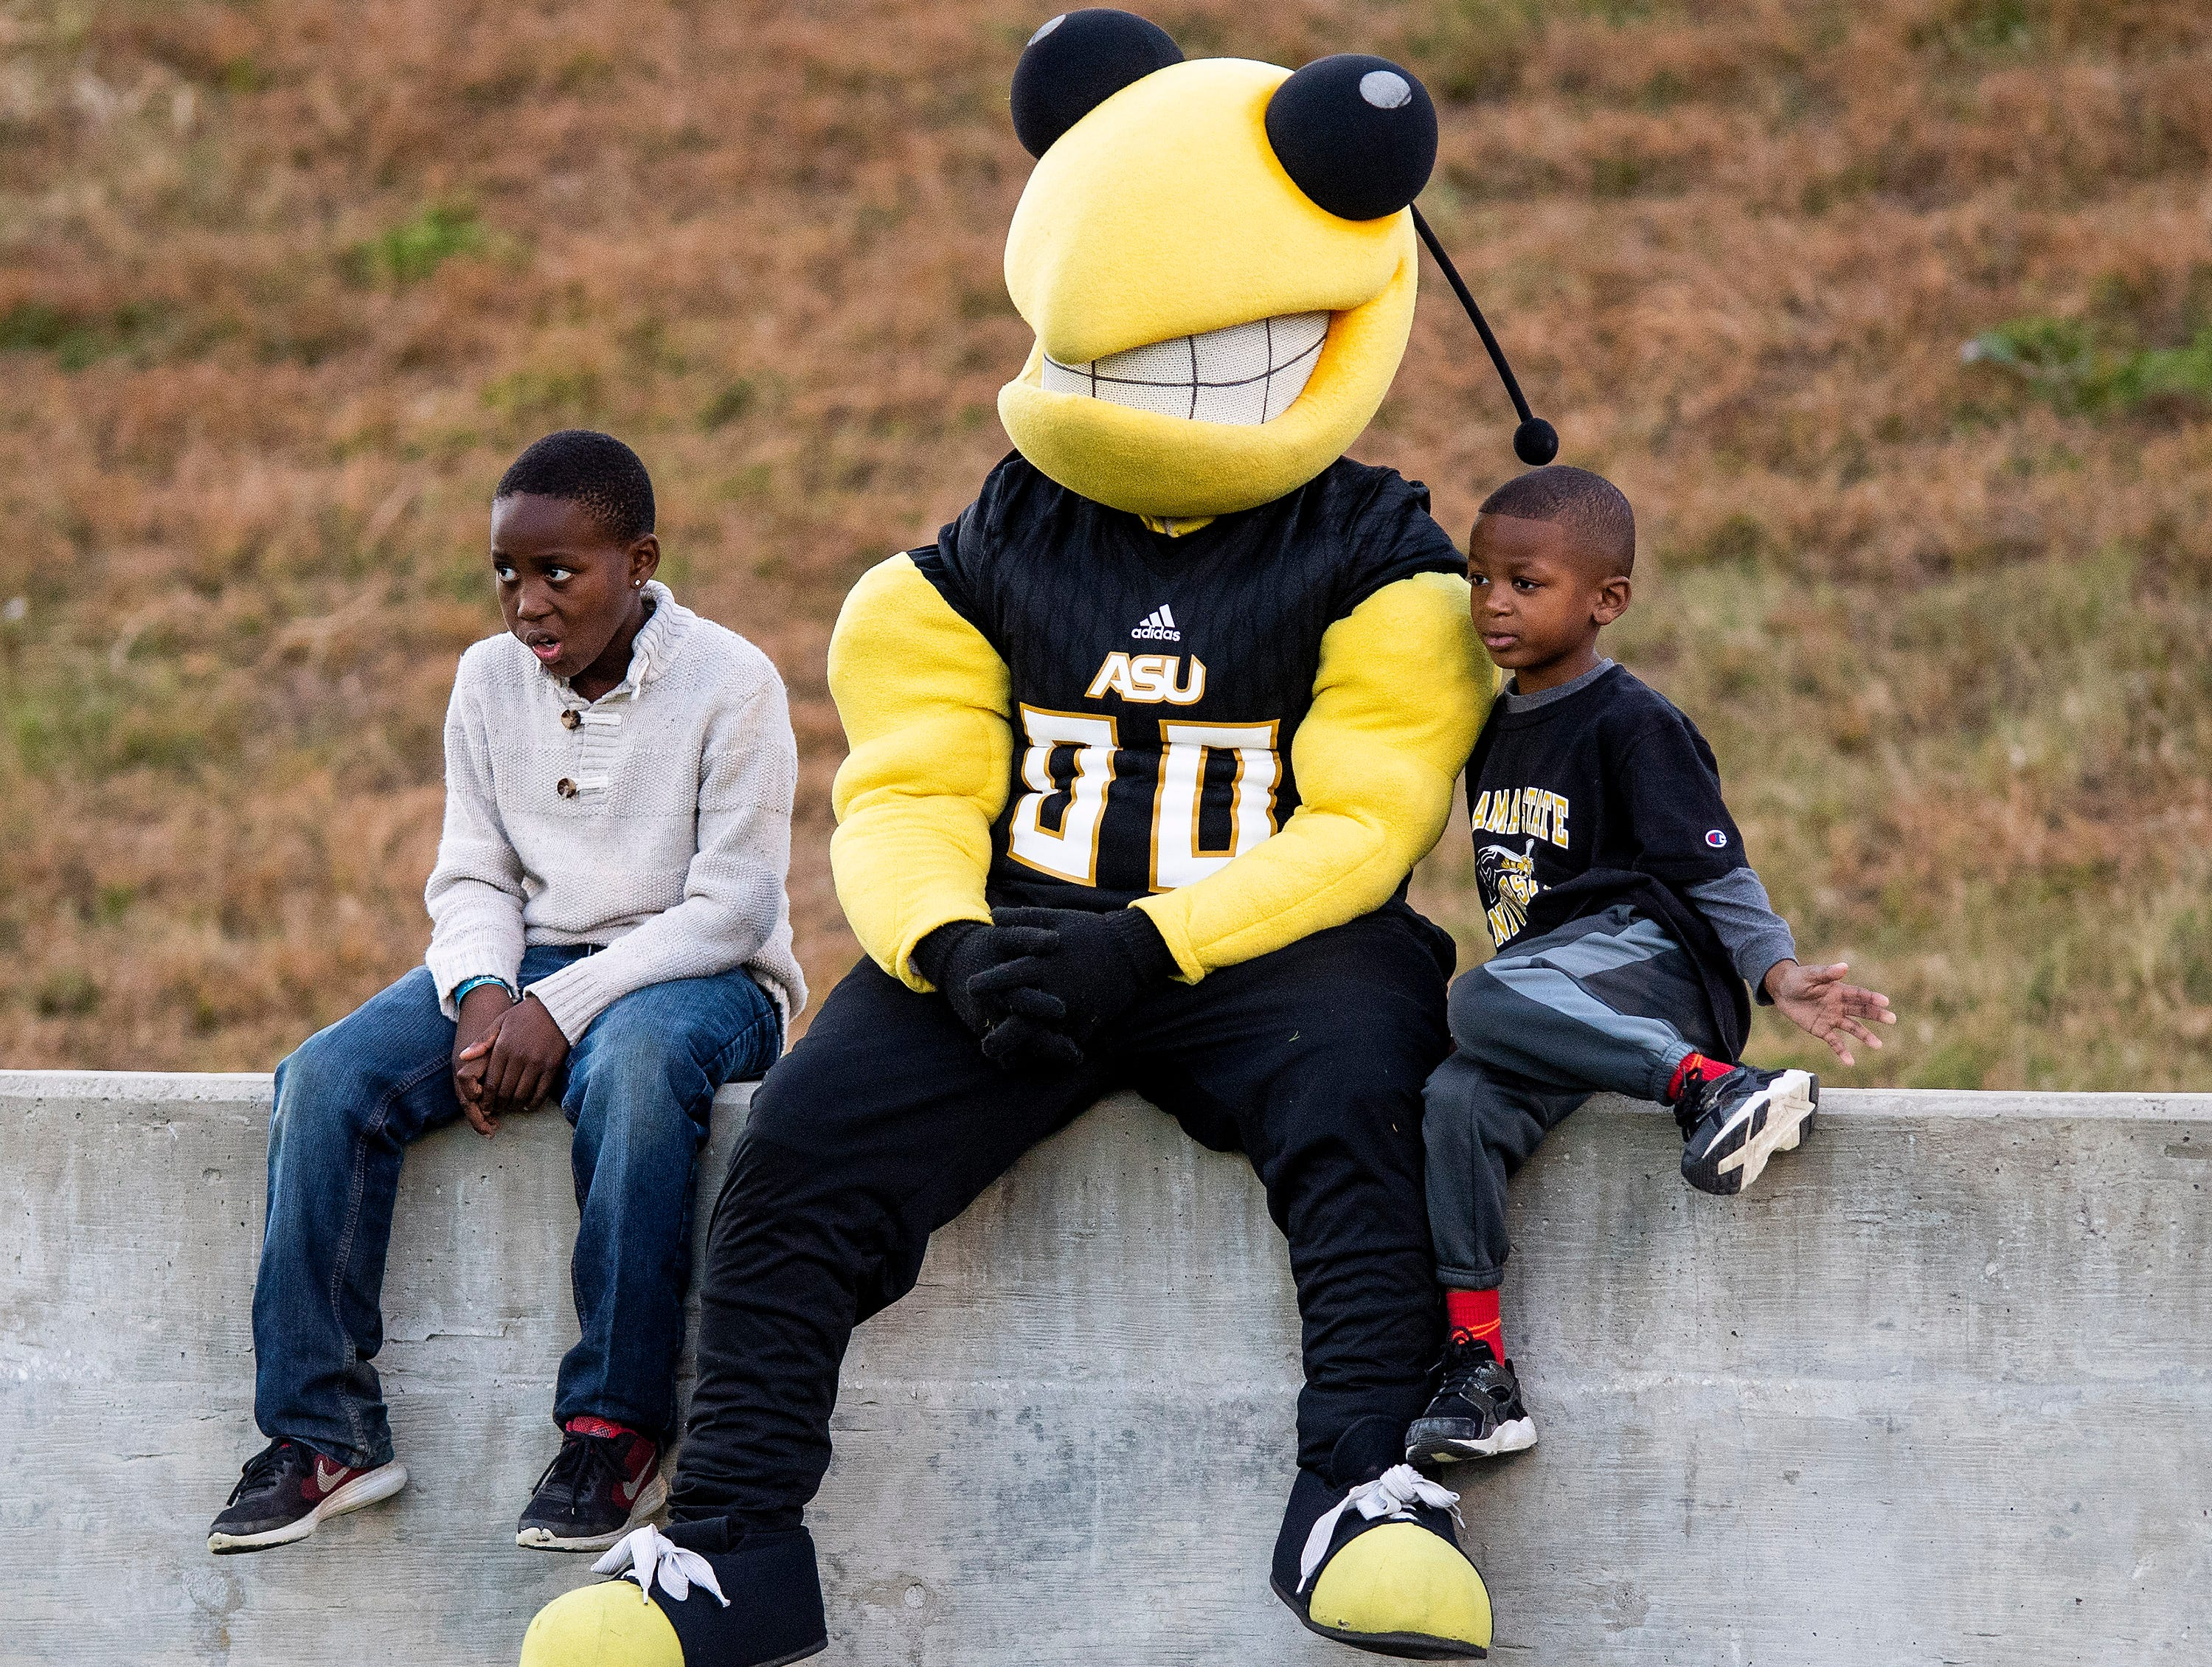 The Alabama State University mascot sits with young fans during the Turkey Day Classic at Hornet Stadium on the ASU campus in Montgomery, Ala., on Thanksgiving Day, Thursday November 22, 2018.